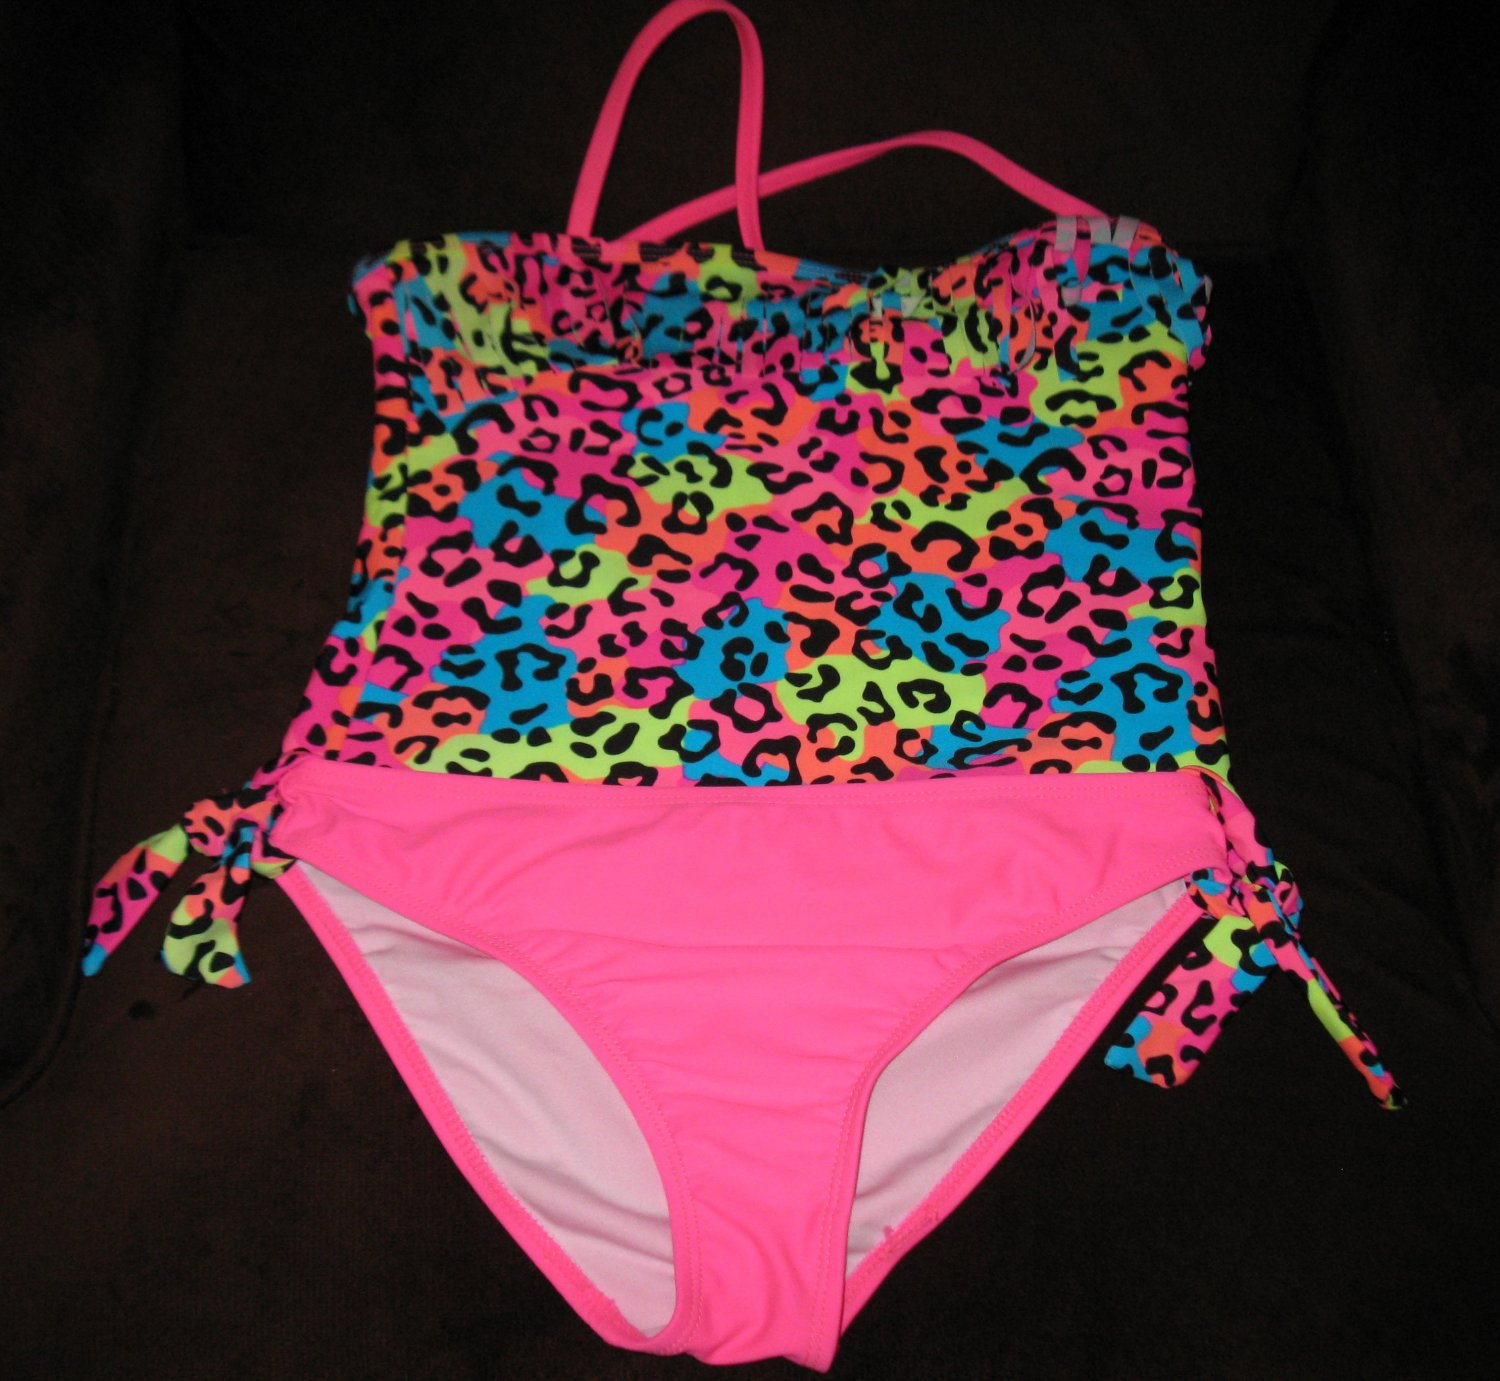 Pink Animal Print 2 pc Swimsuit by St Tropez Girl Size 10 New! T1154